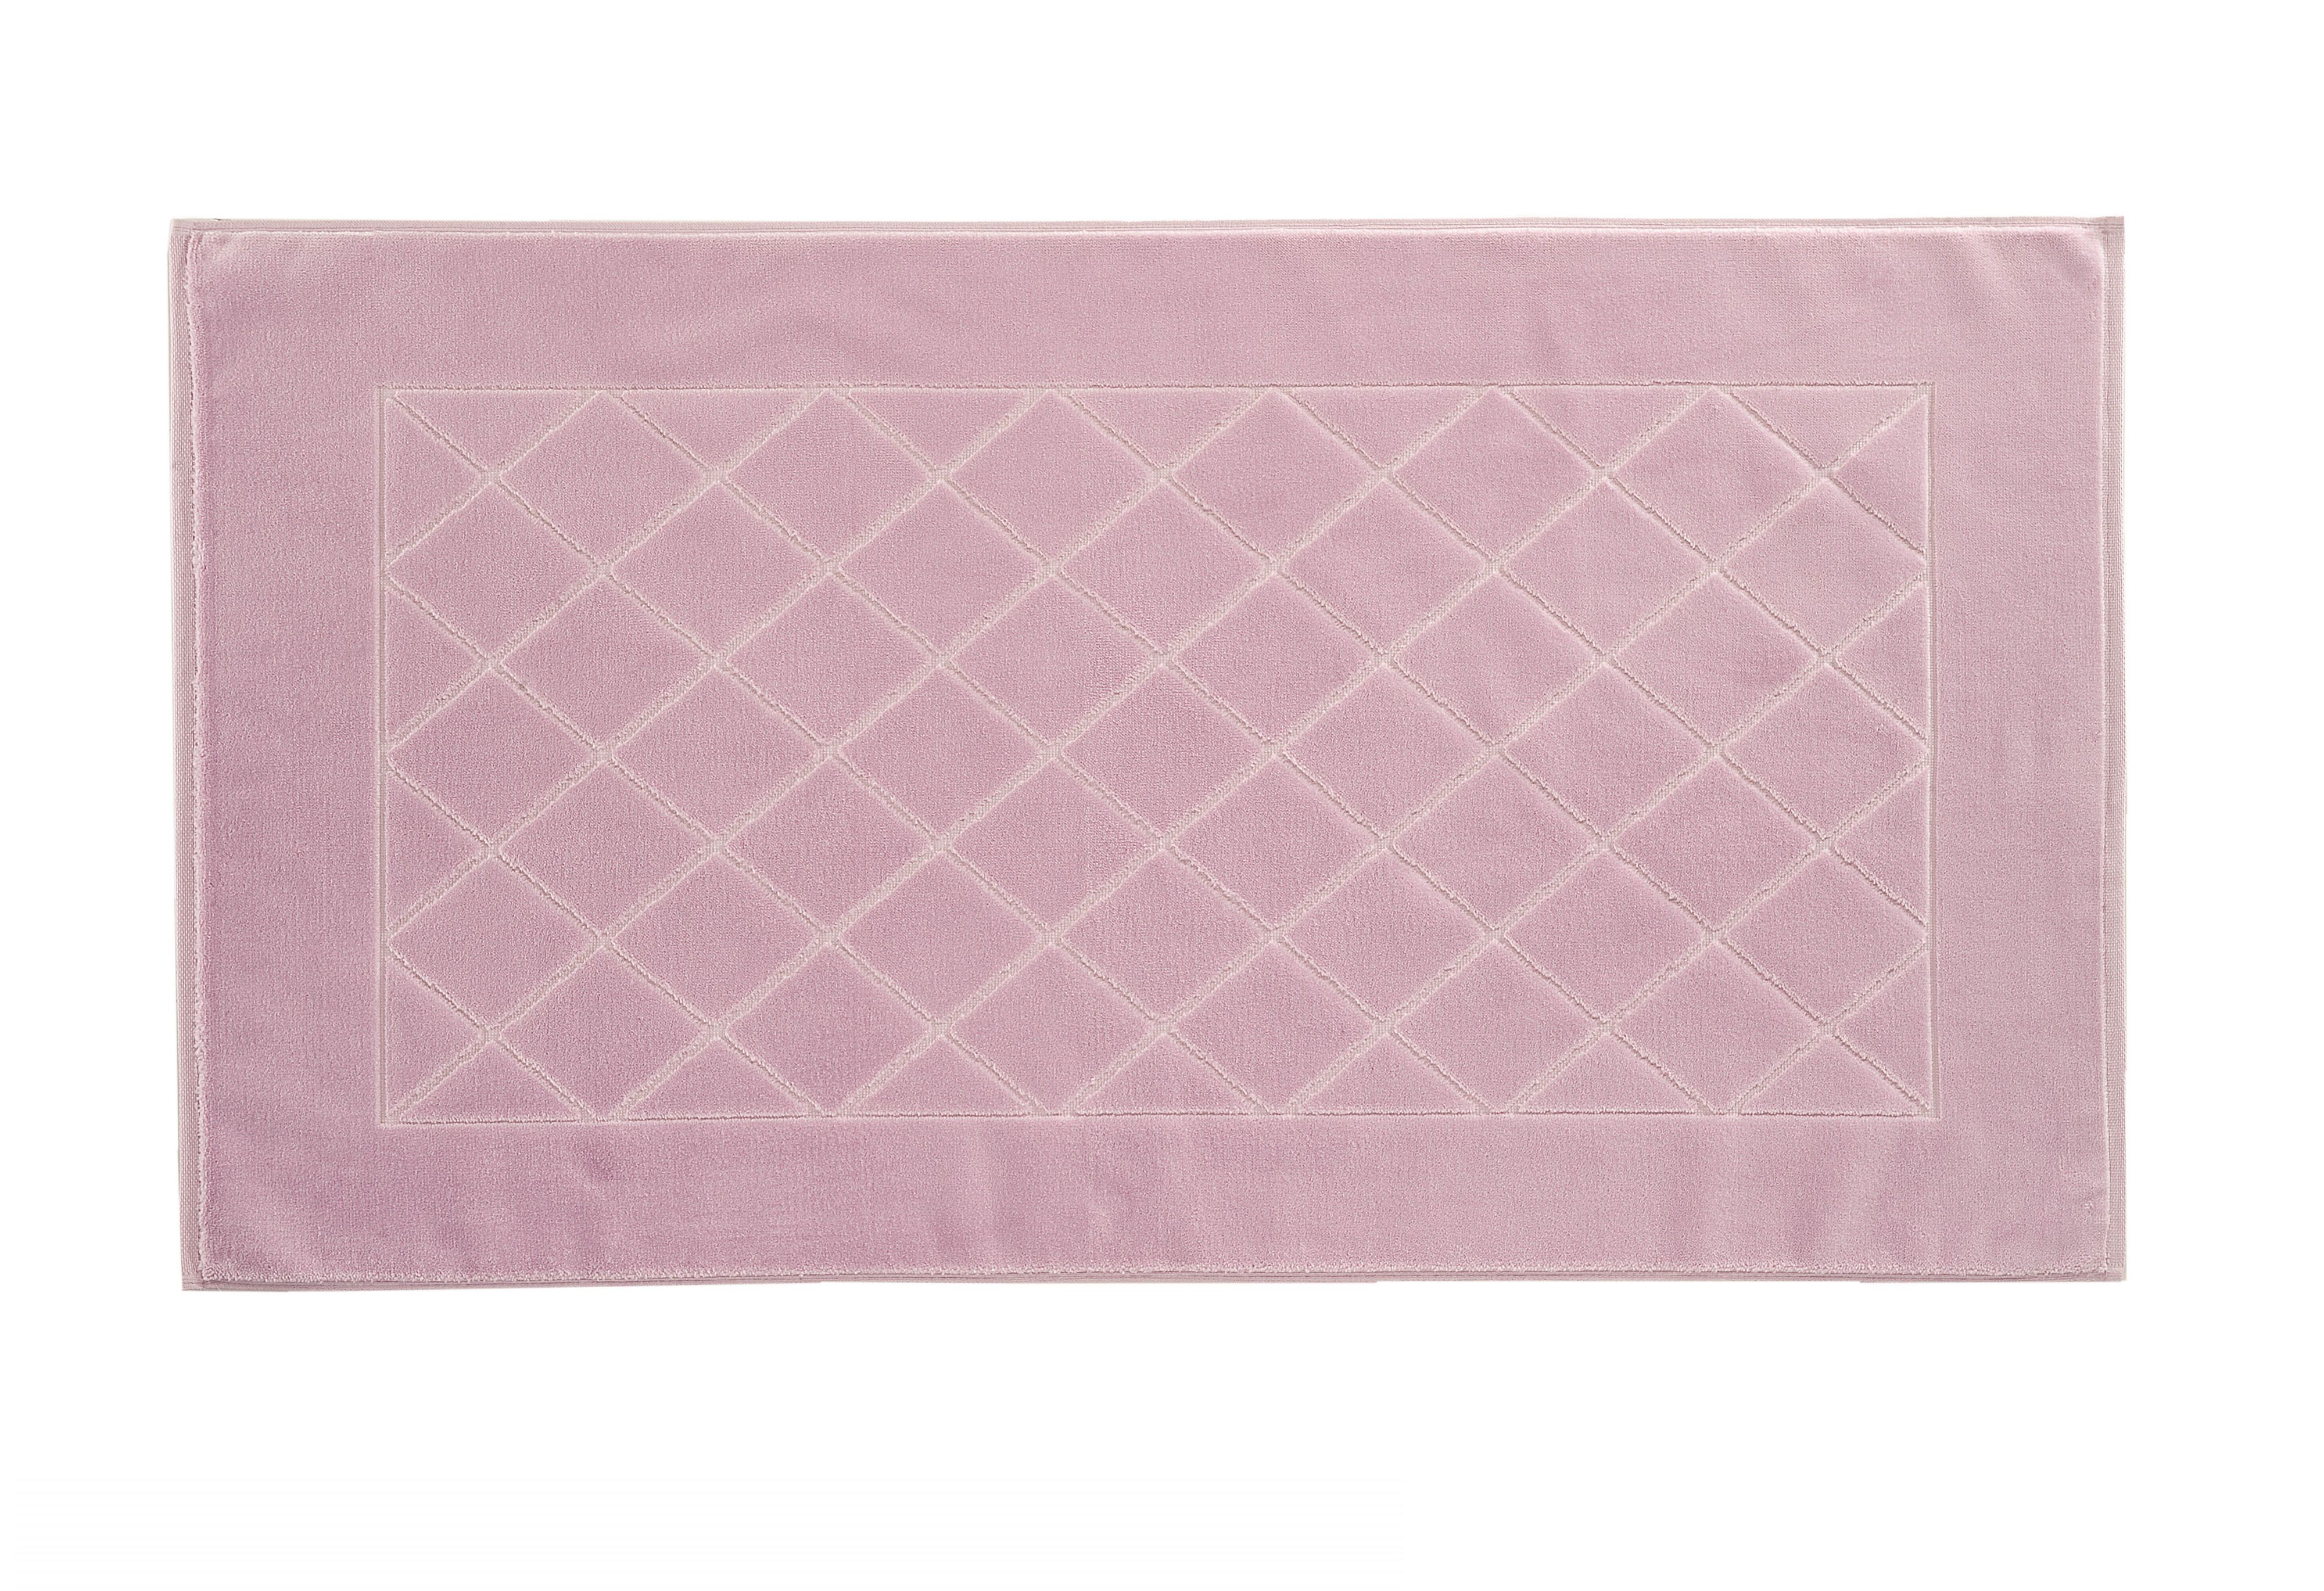 Dreams bath mat range in lavender